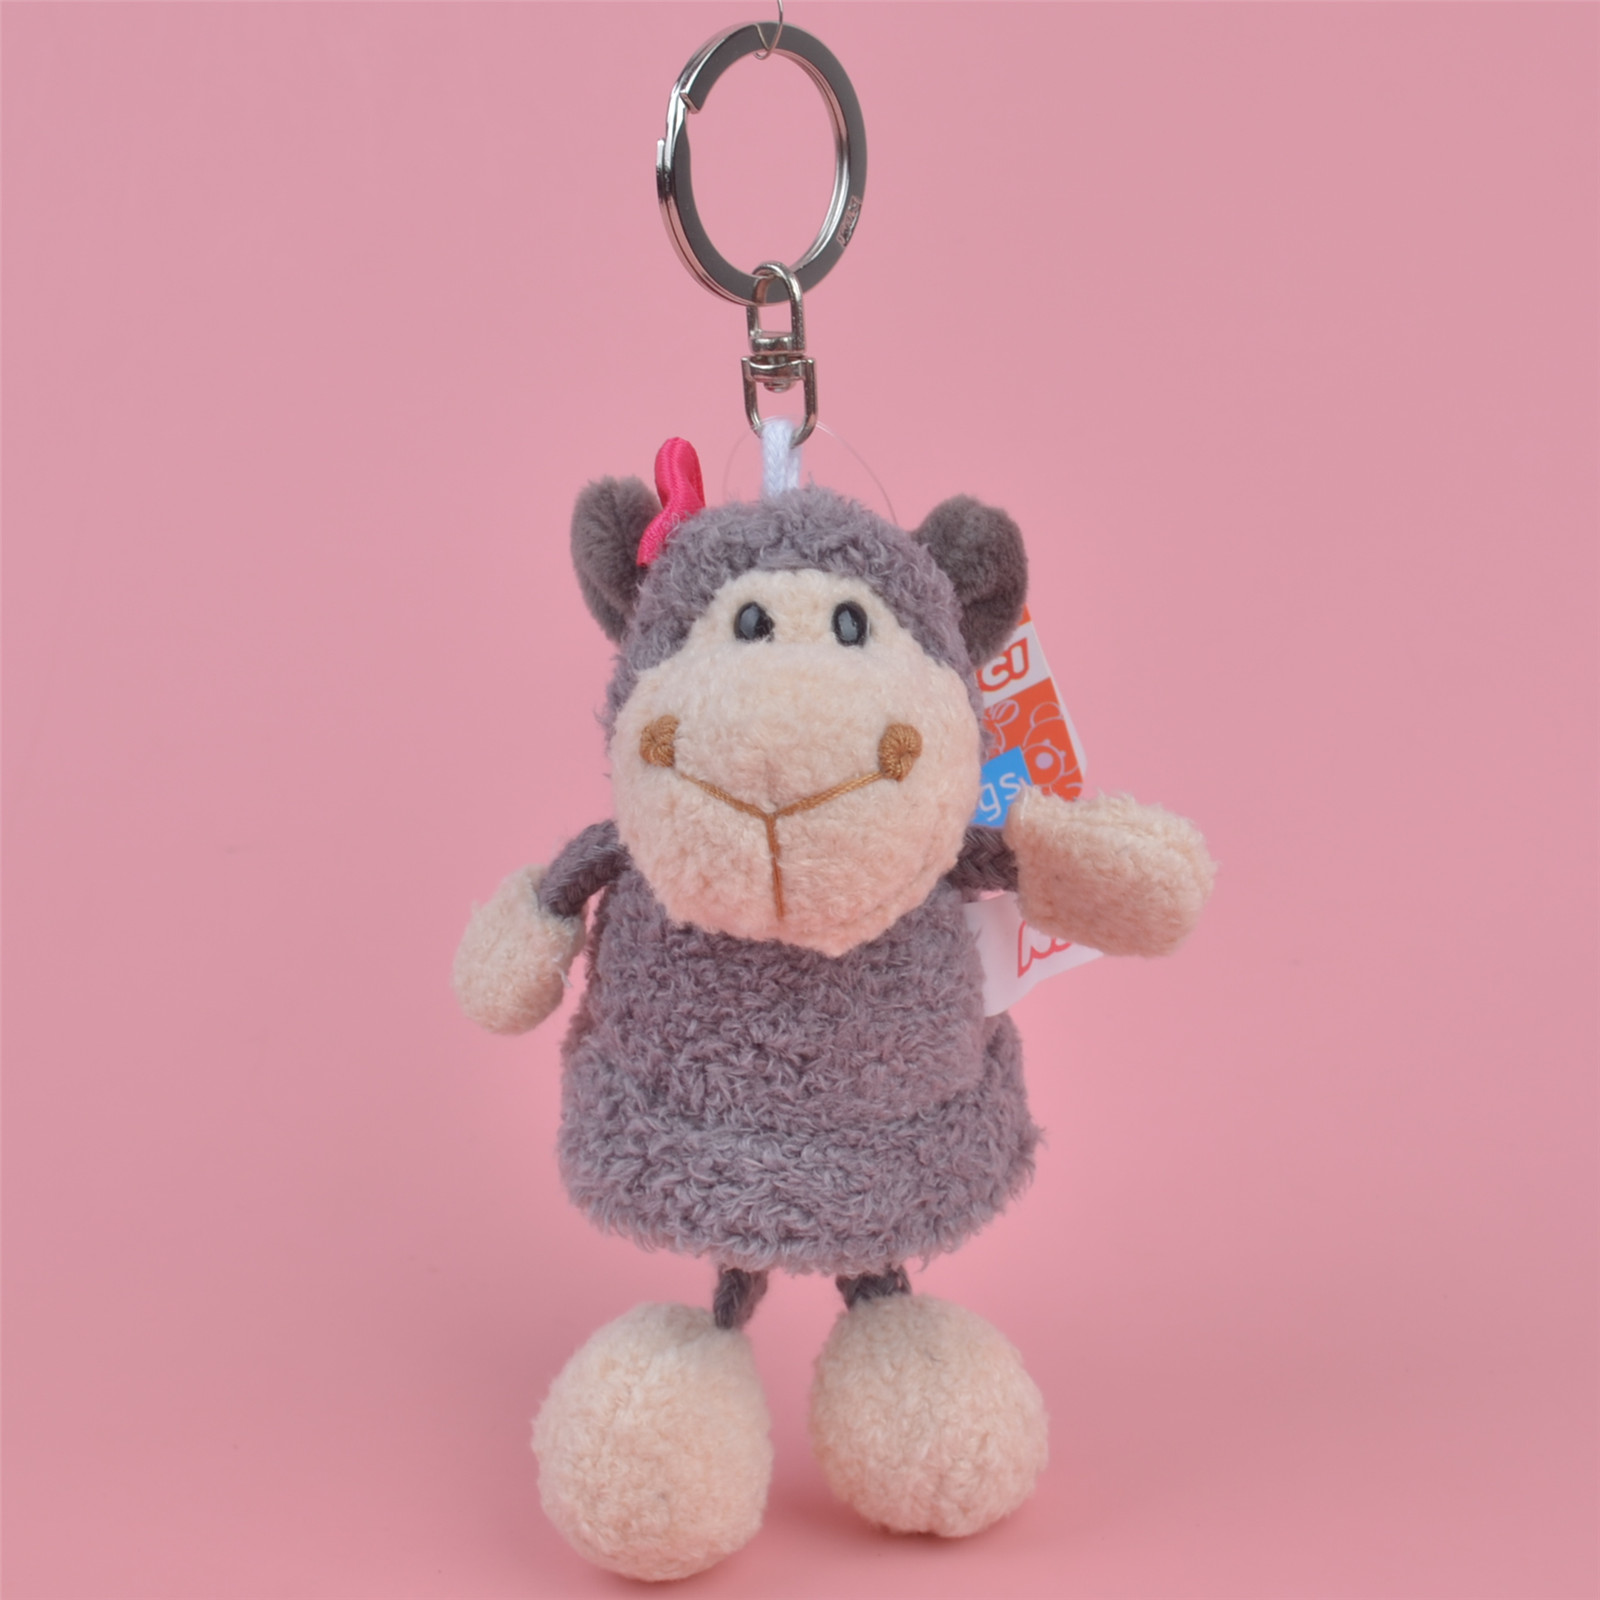 Grey Sheep Animals stuffed Pendant  Keyring Plush Toy, lamb Backpack Decoration  Keychain / Keyholder Gift